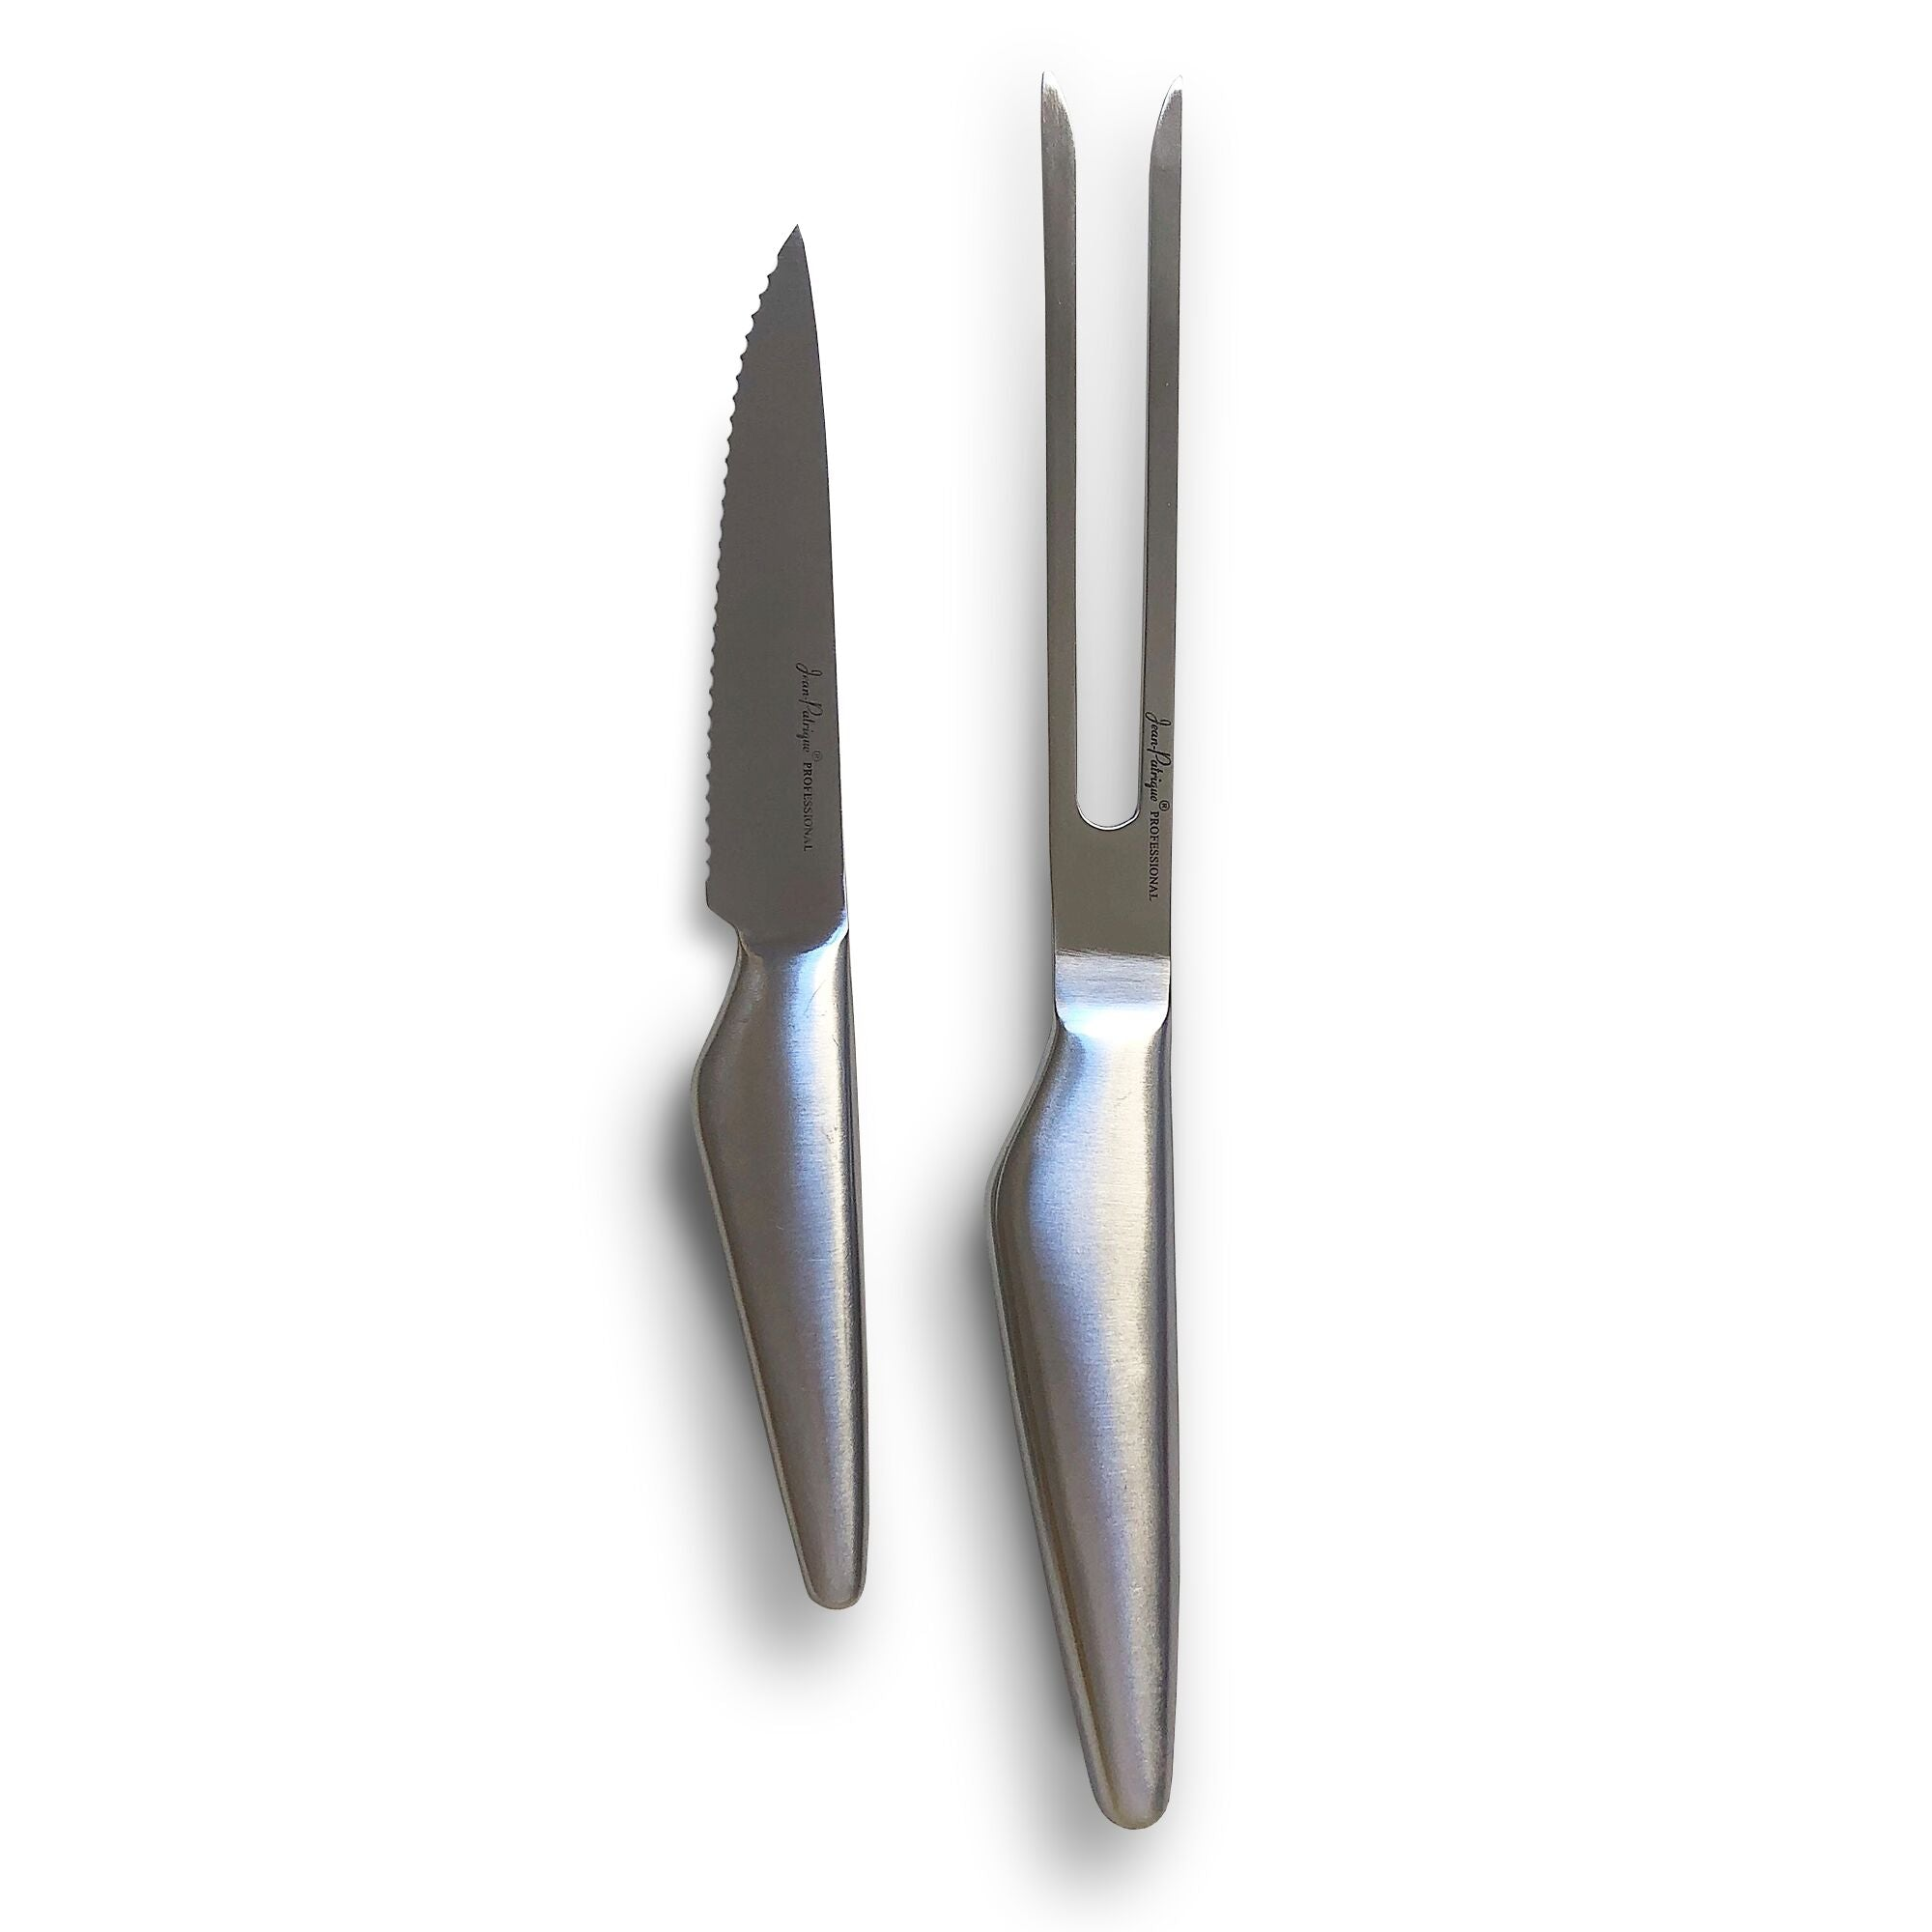 Chopaholic Carving Knife and Meat Fork Set